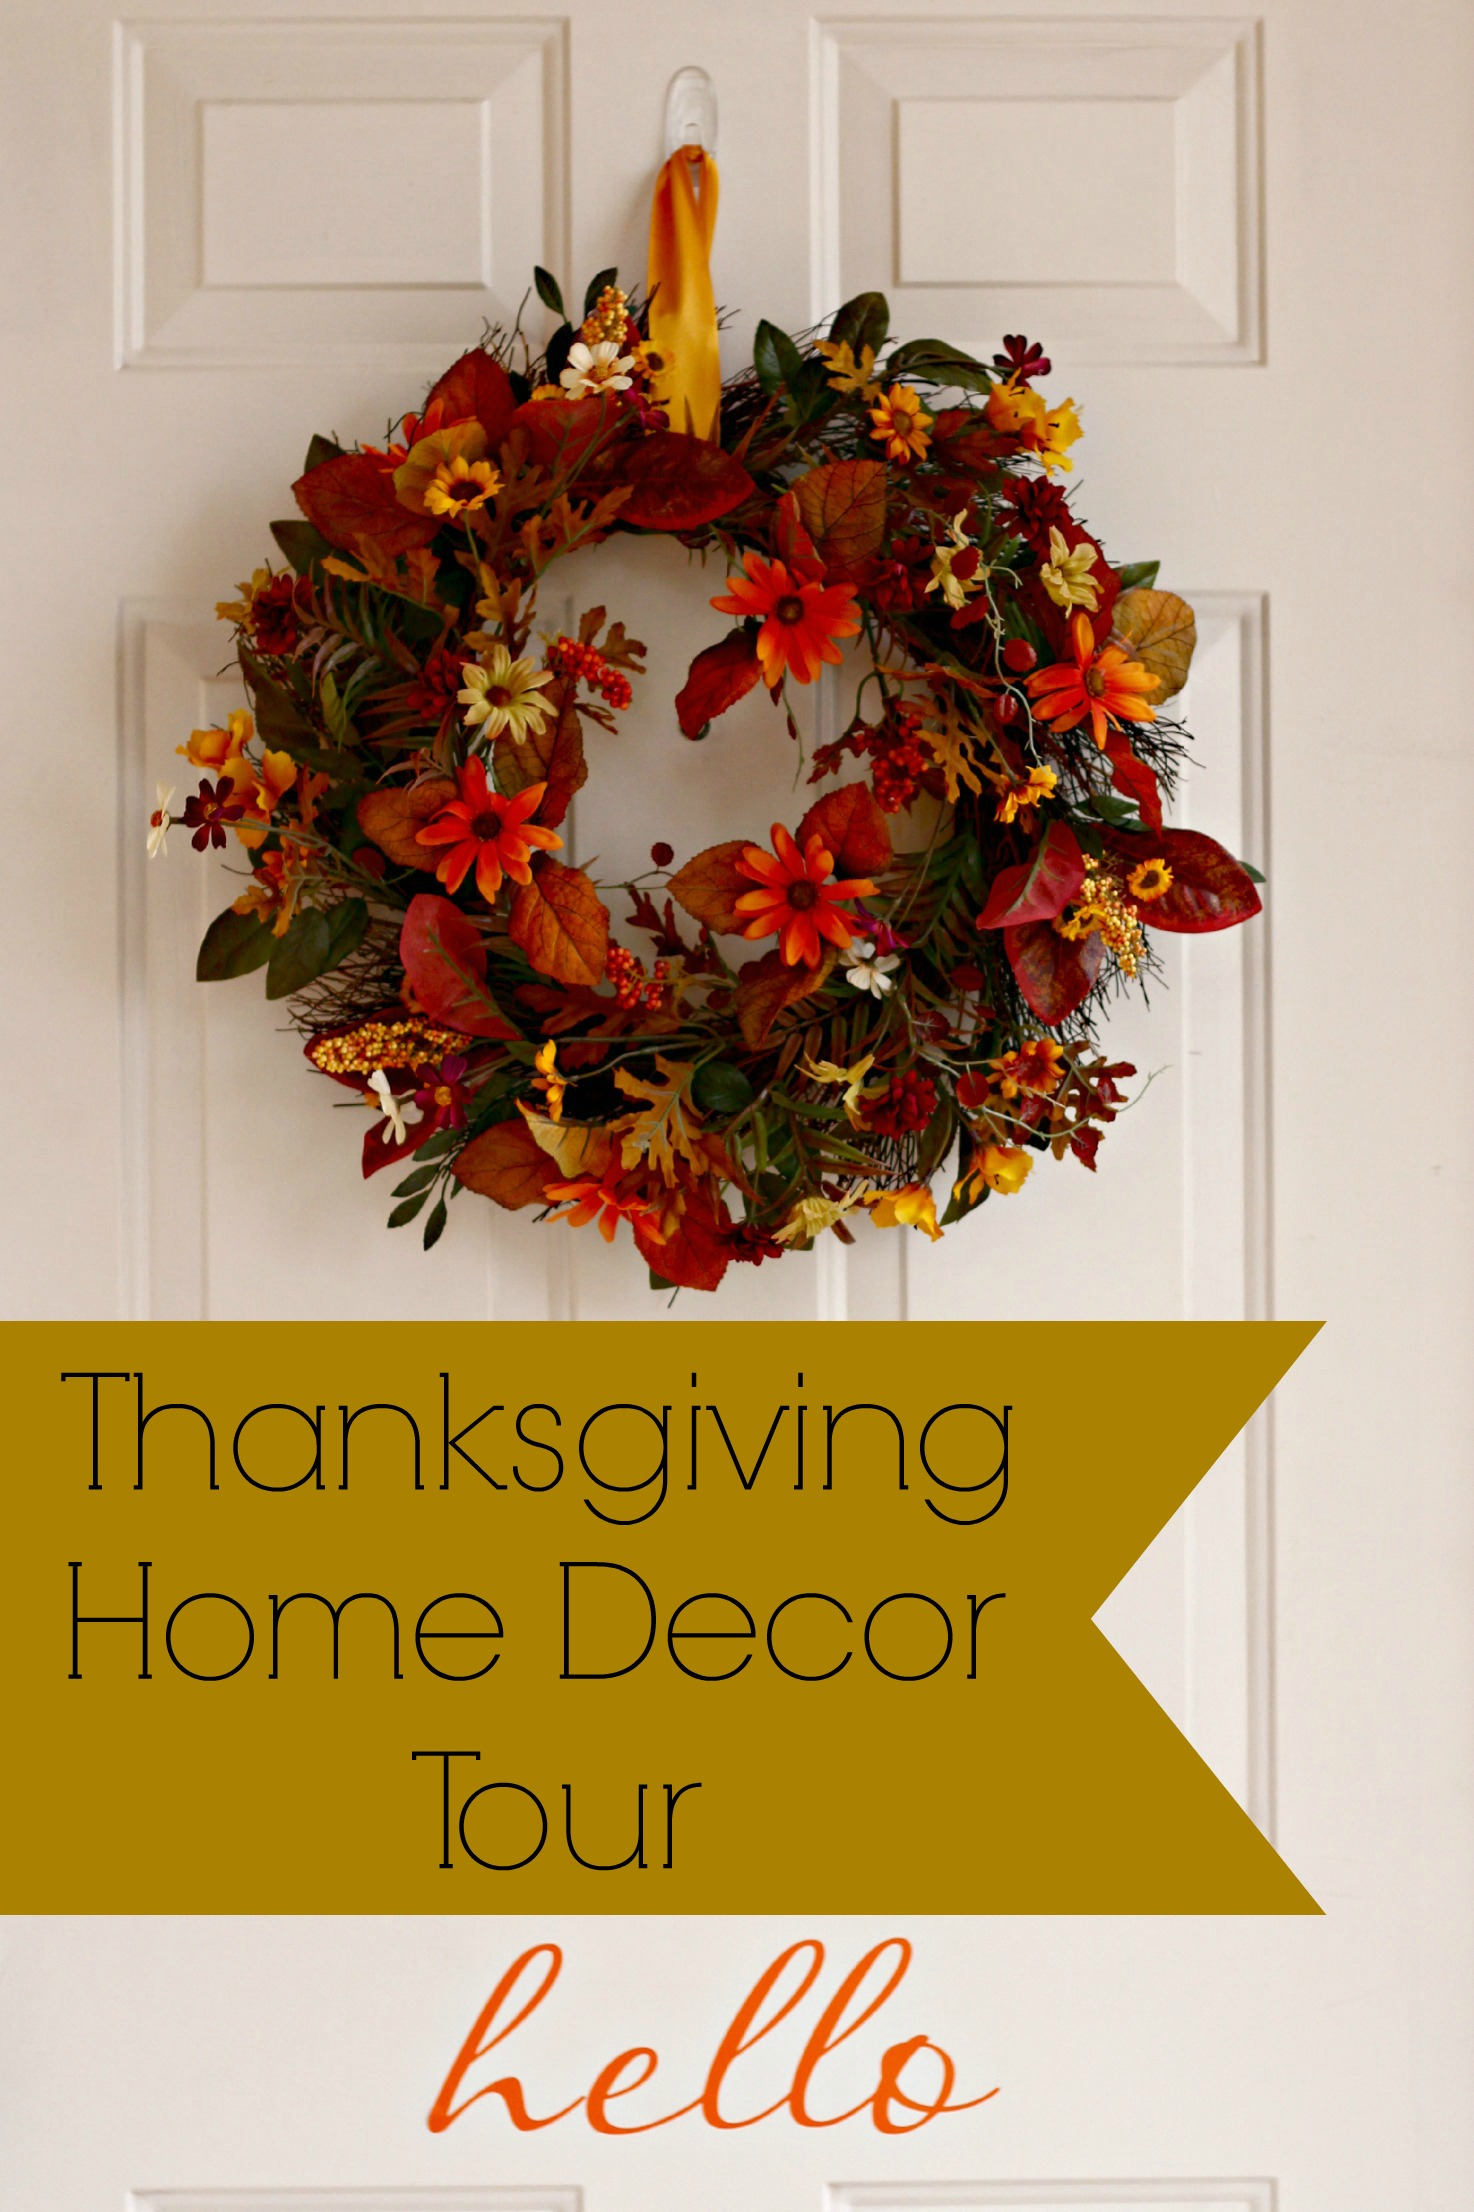 Thanksgiving home decorations 28 images dishfunctional for Thanksgiving home decorations